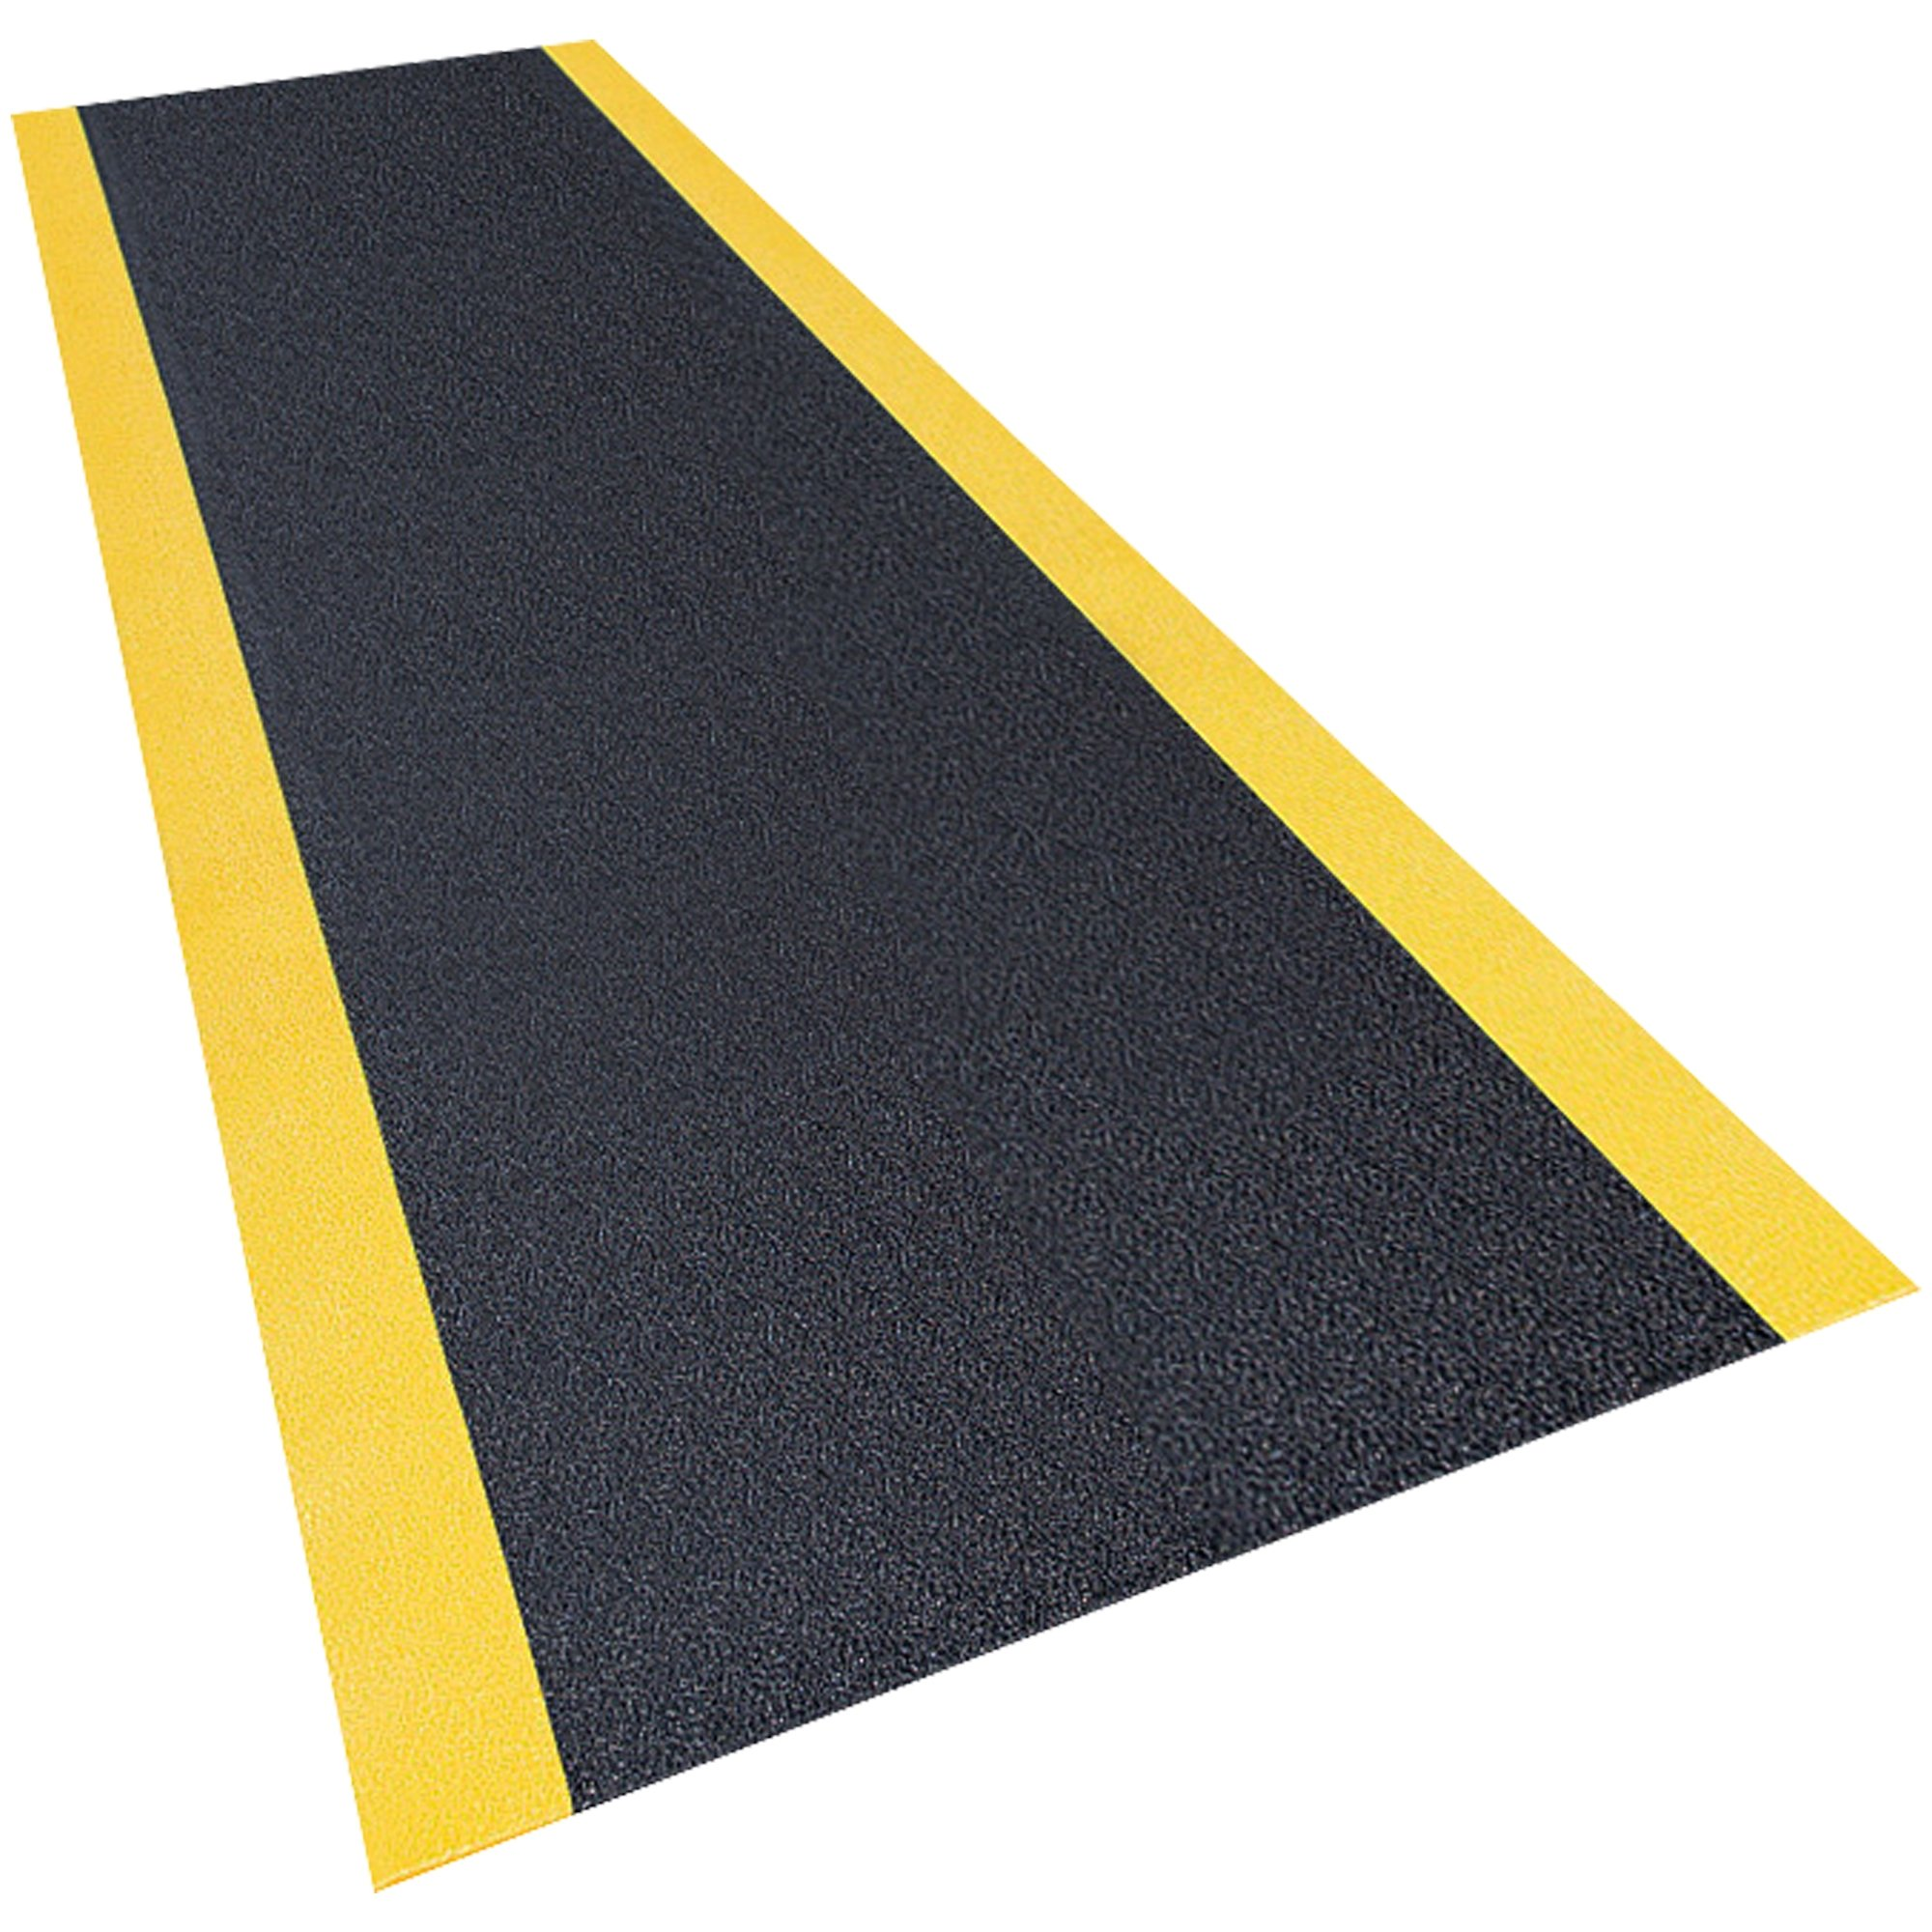 4 x 8' Black/Yellow Premium Anti-Fatigue Mat